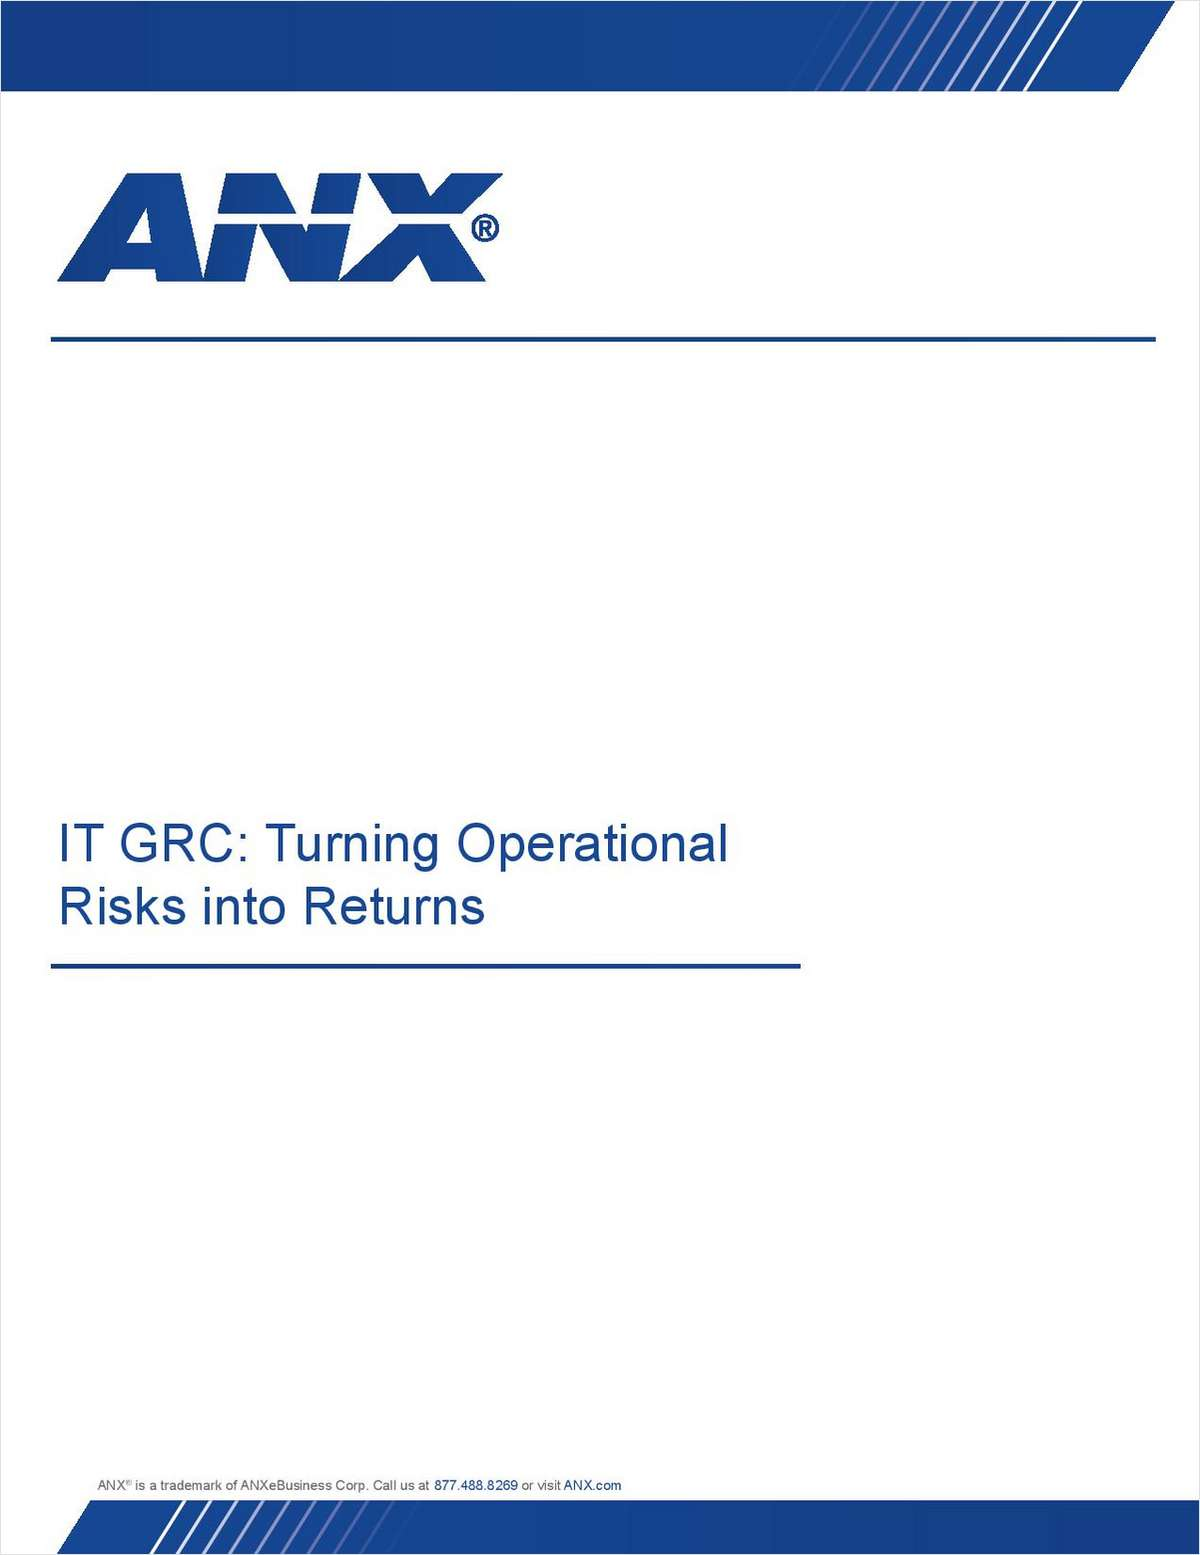 IT GRC Turning Operational Risks into Returns